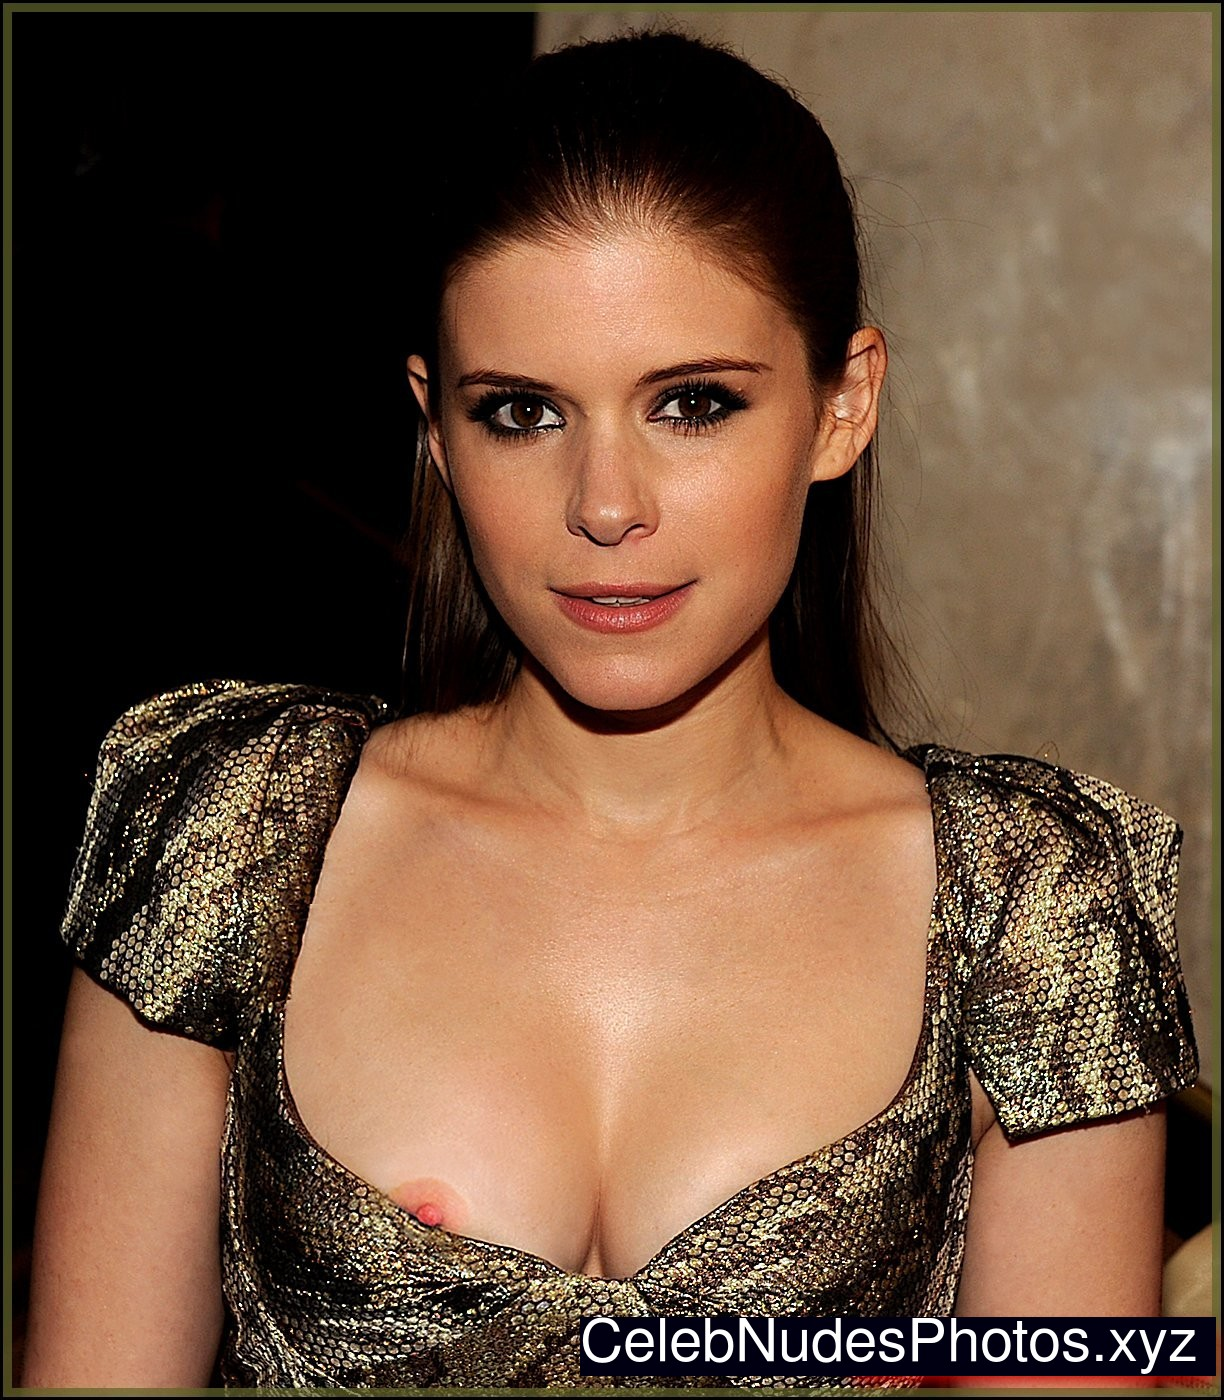 Excellent idea Caprice kate mara nude agree, very